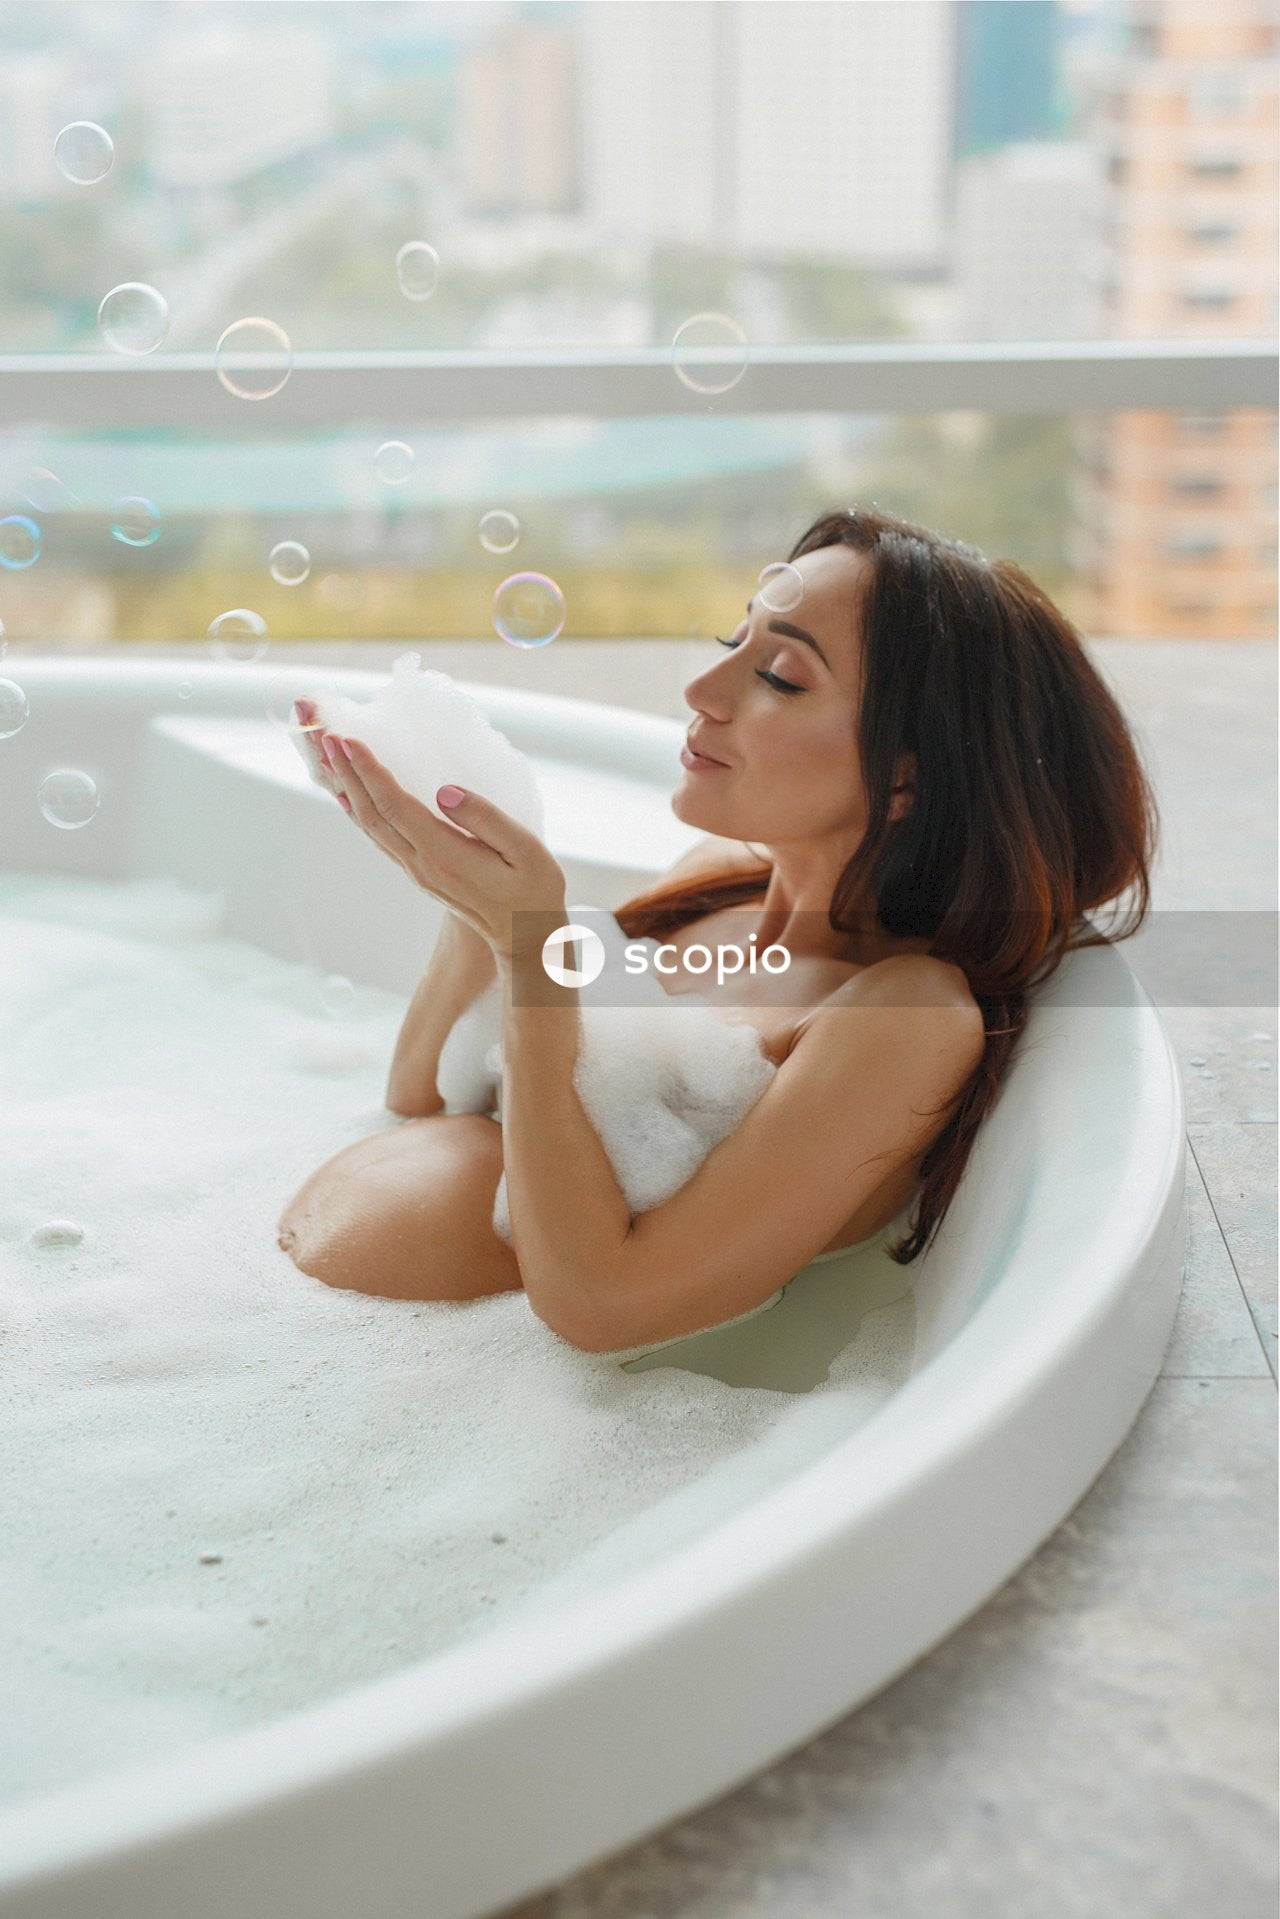 Woman inside bathtub playing bubbles